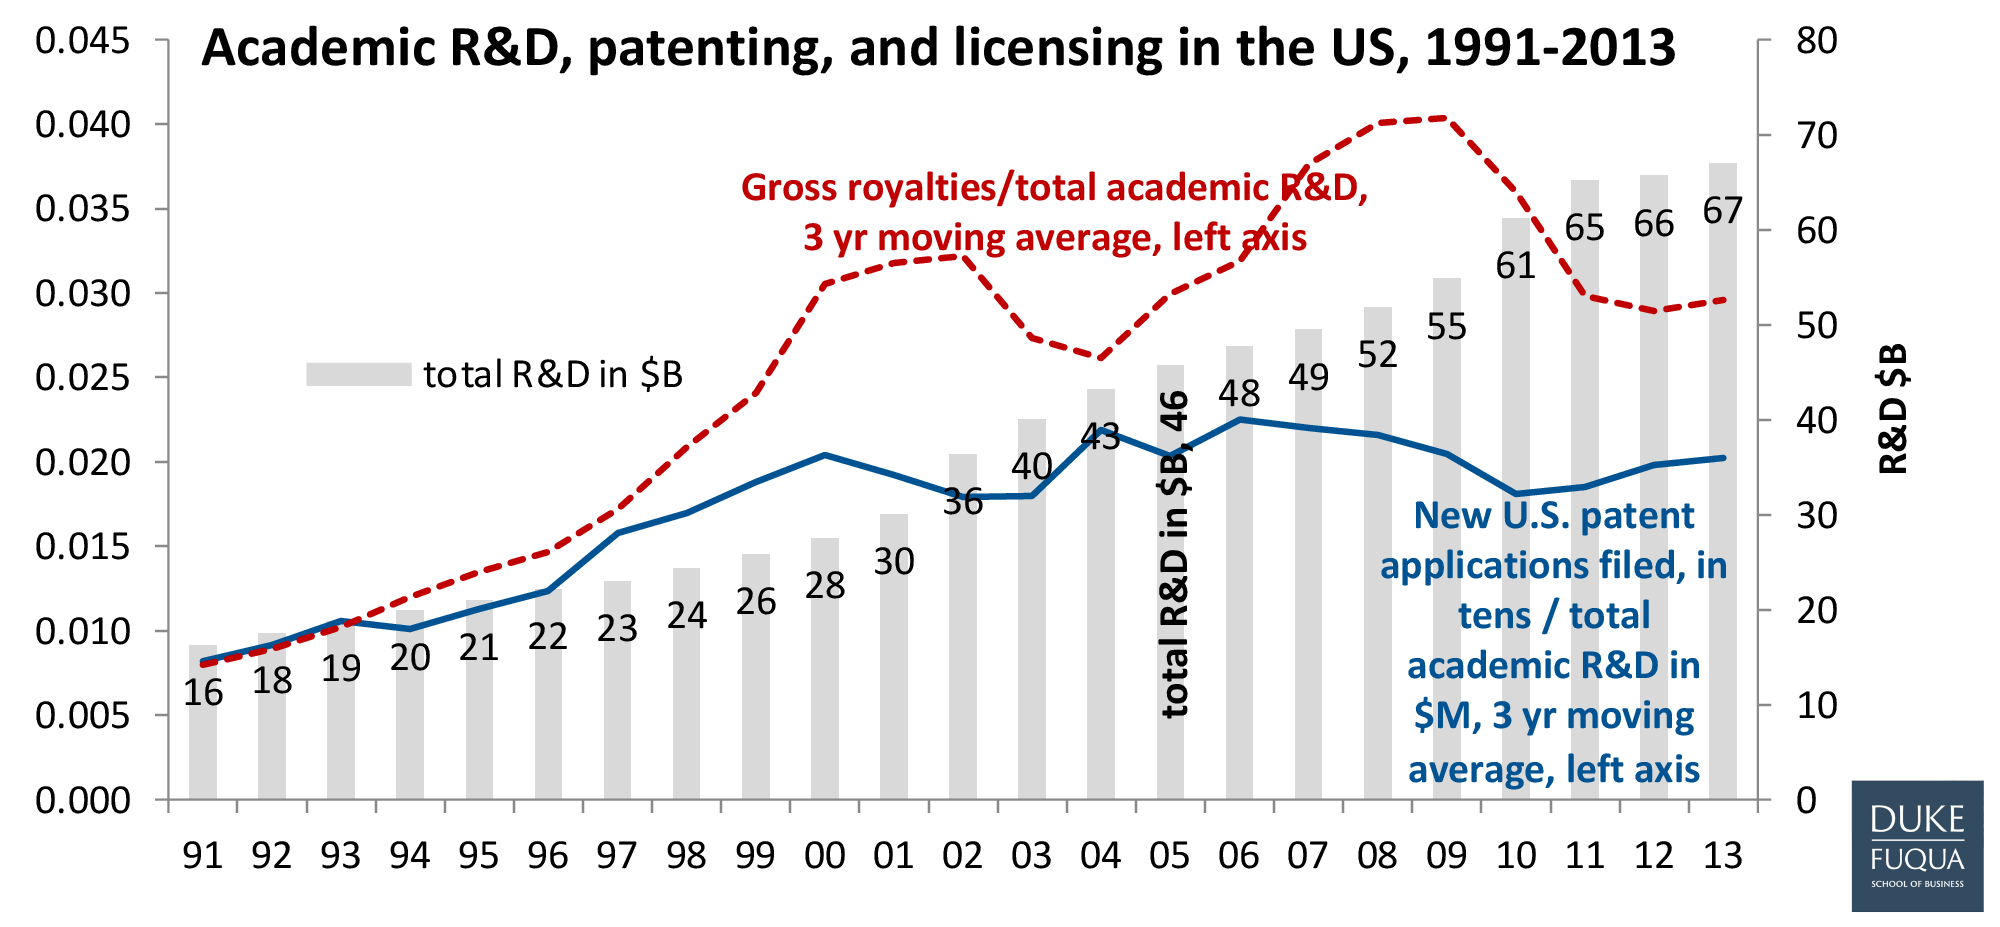 Academic R&D, patenting and licensing in the US, 1991-2013